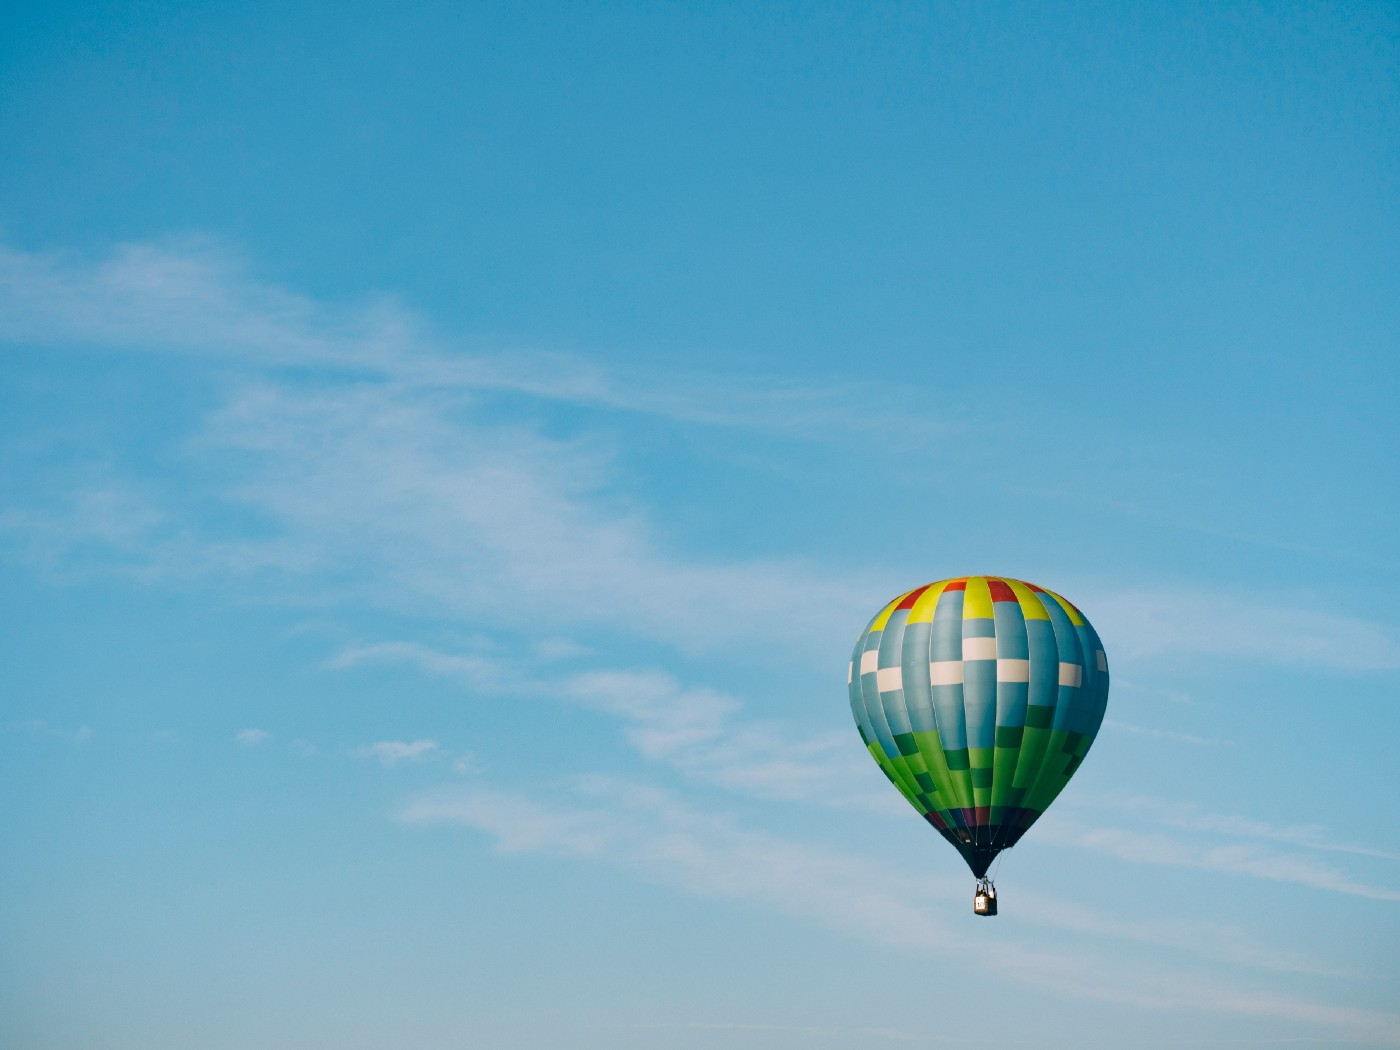 colorful hot air balloon against a blue sky